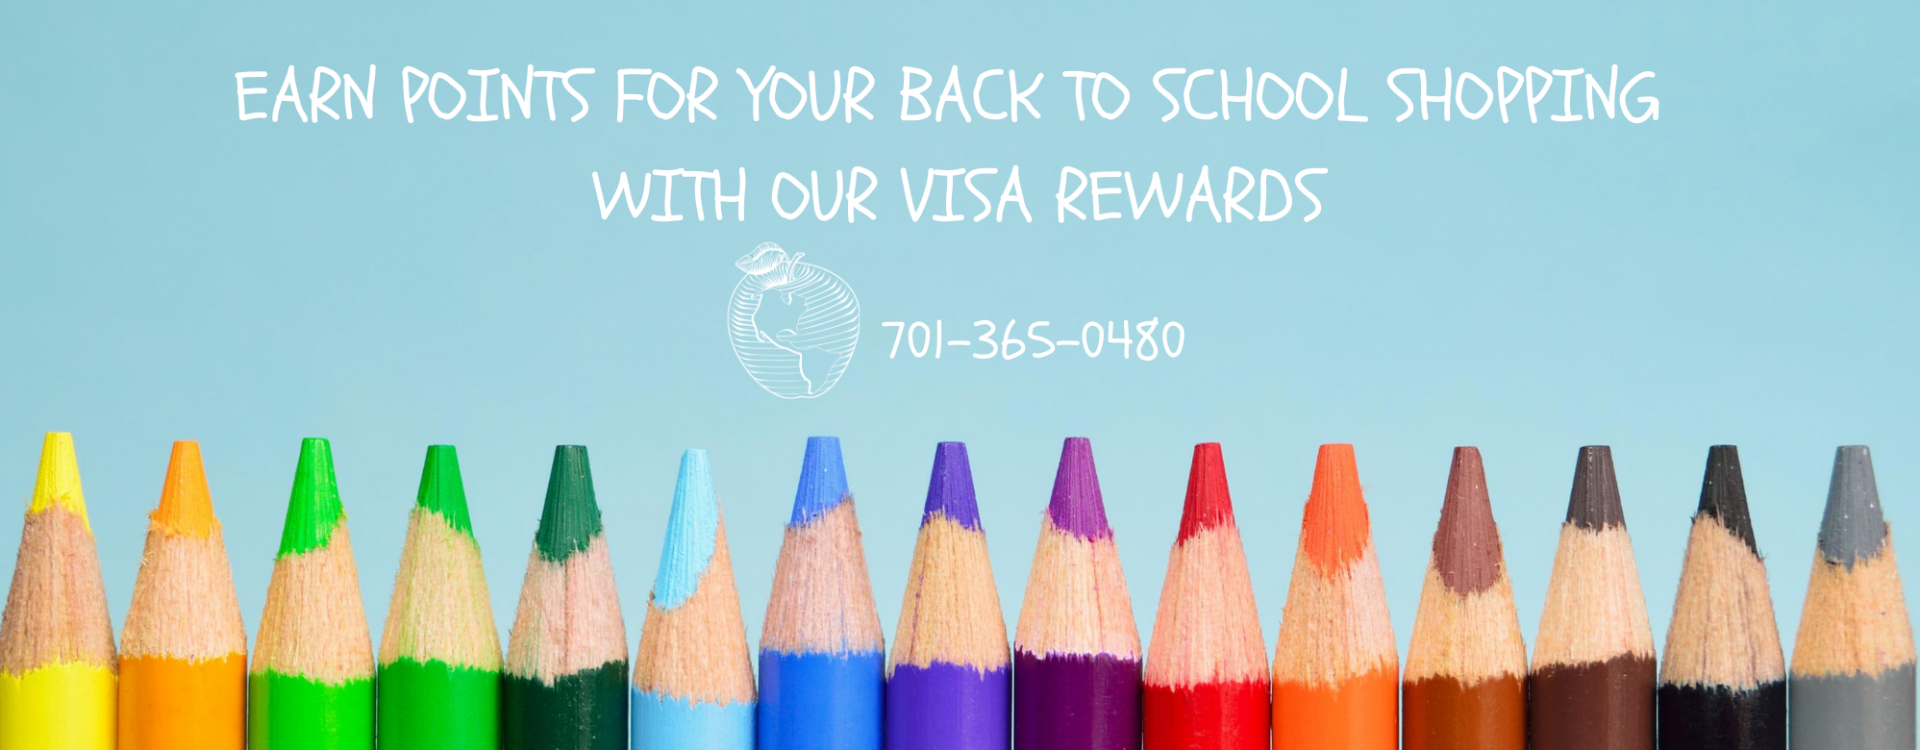 Earn points for your back to school shopping with our visa rewards 701-365-04580